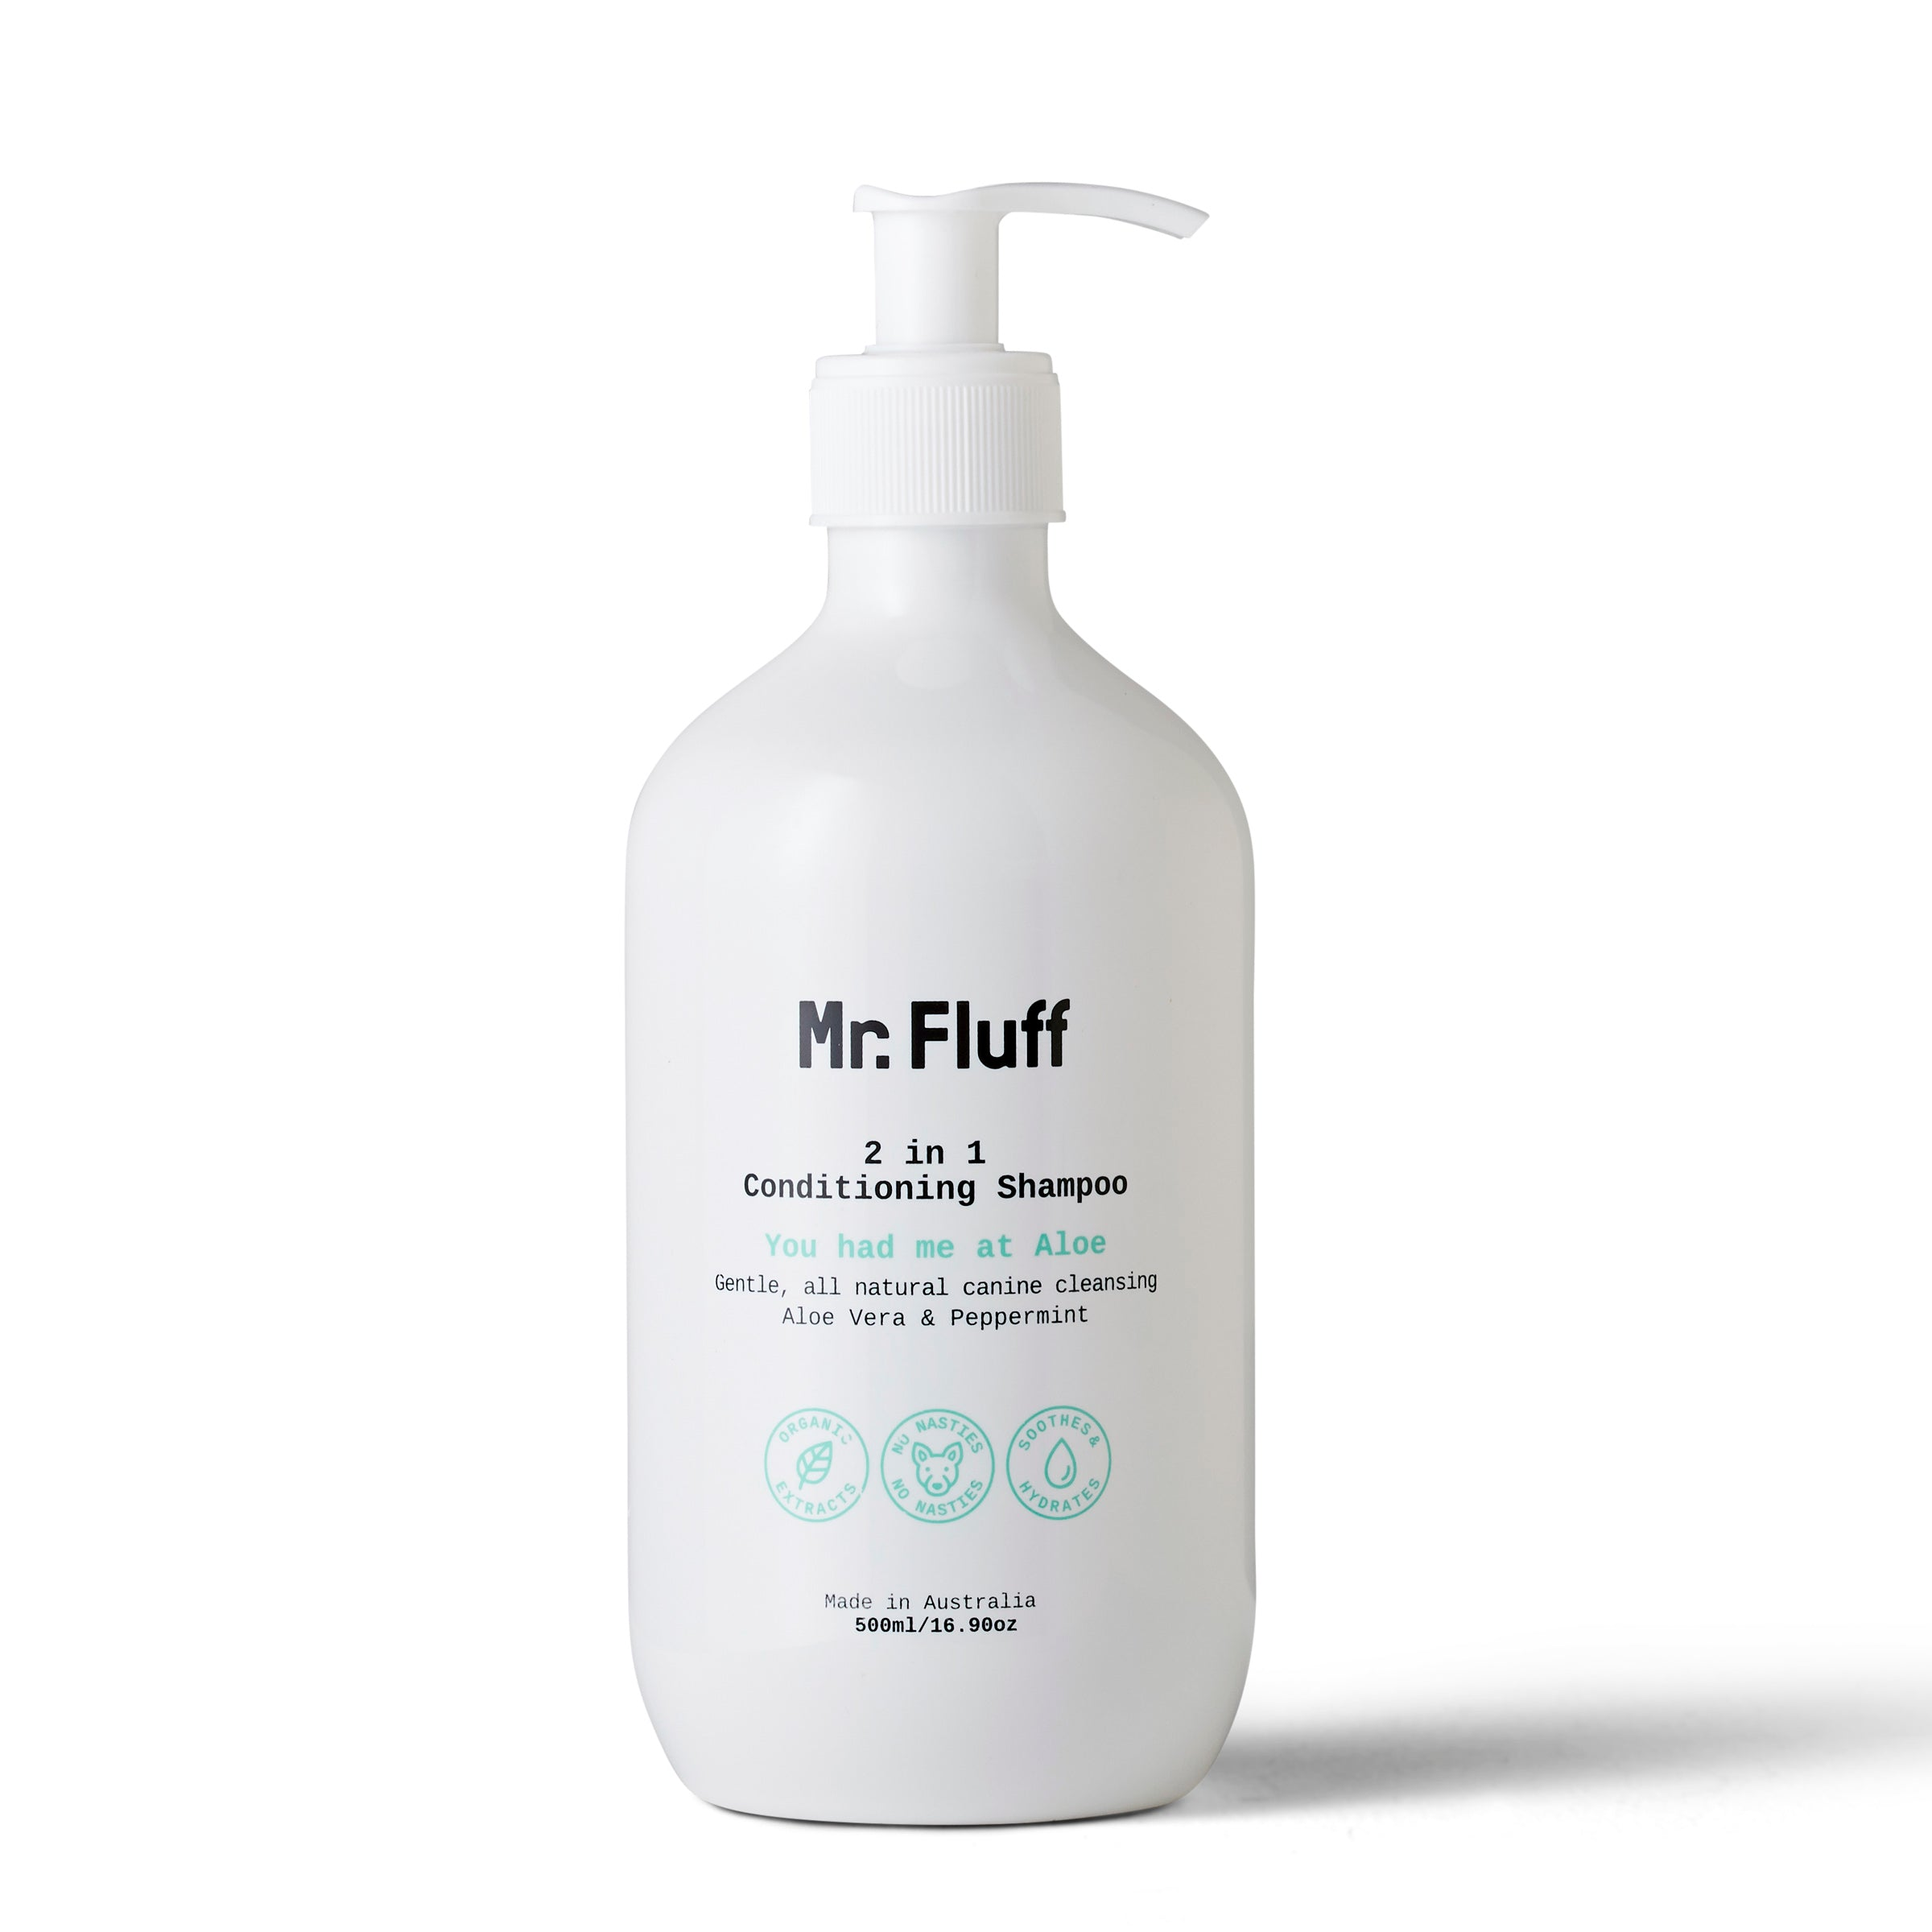 All Natural Vegan Dog Shampoo Mr.Fluff - Aloe Vera & Peppermint